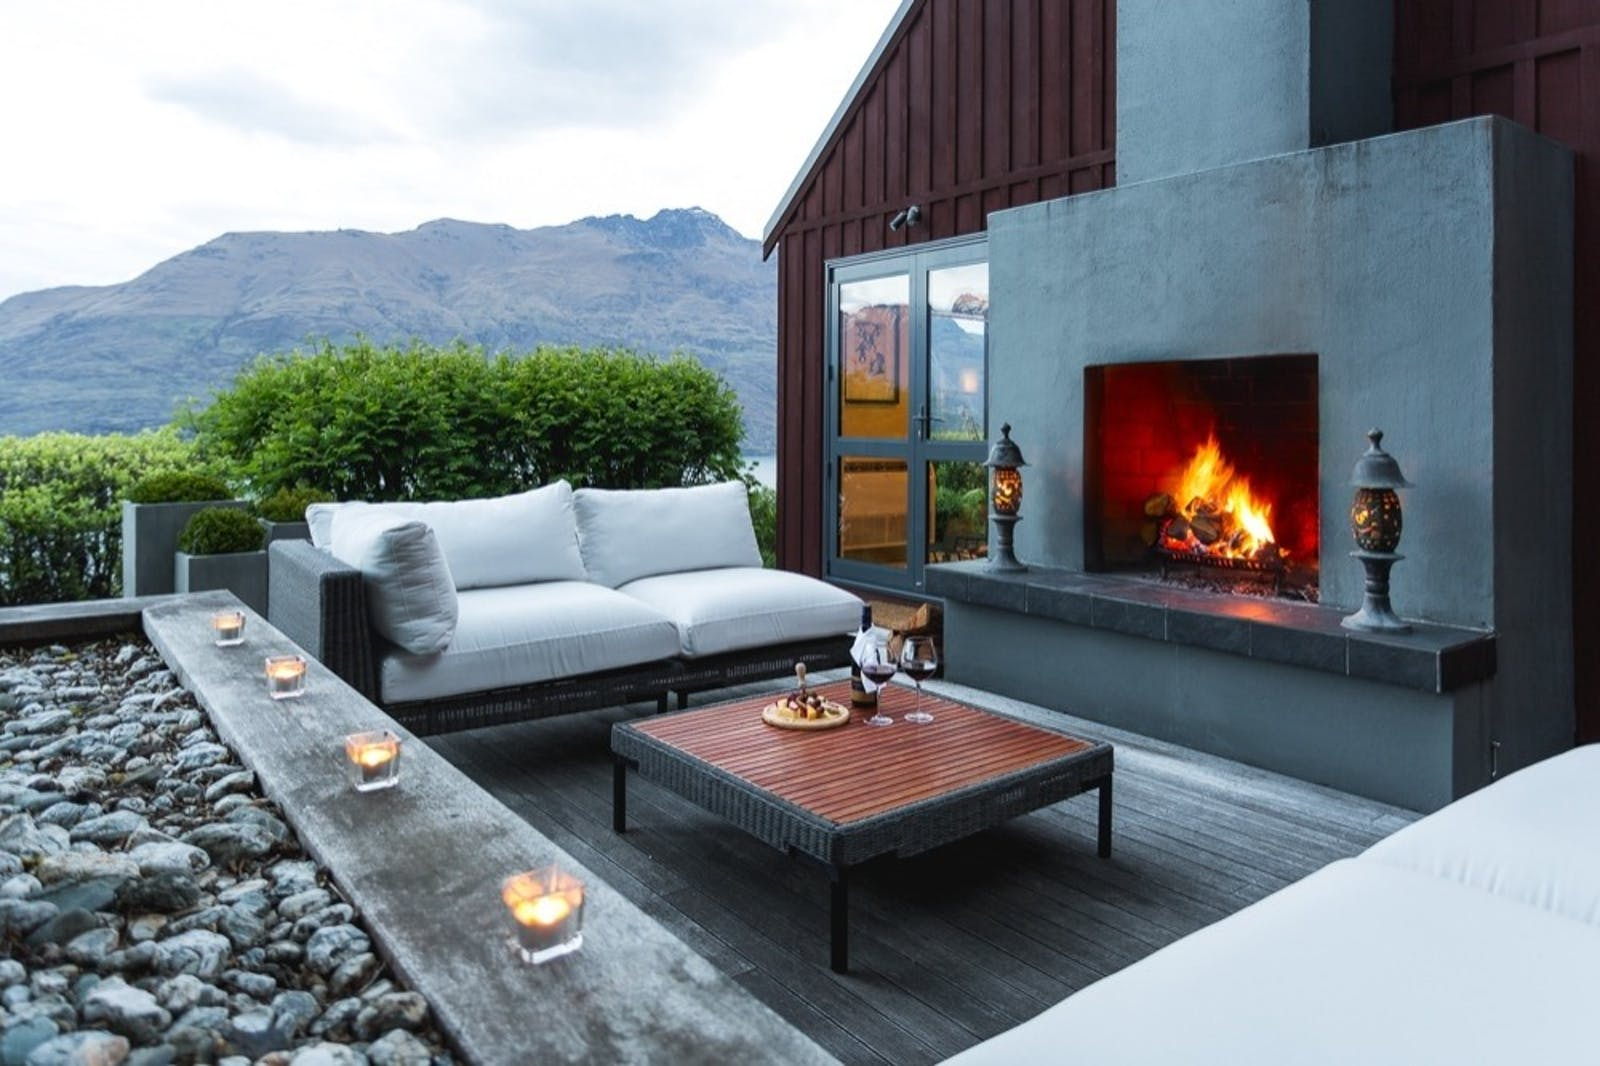 outdoor seating at azur lodge, Queenstown, South Island, New Zealand